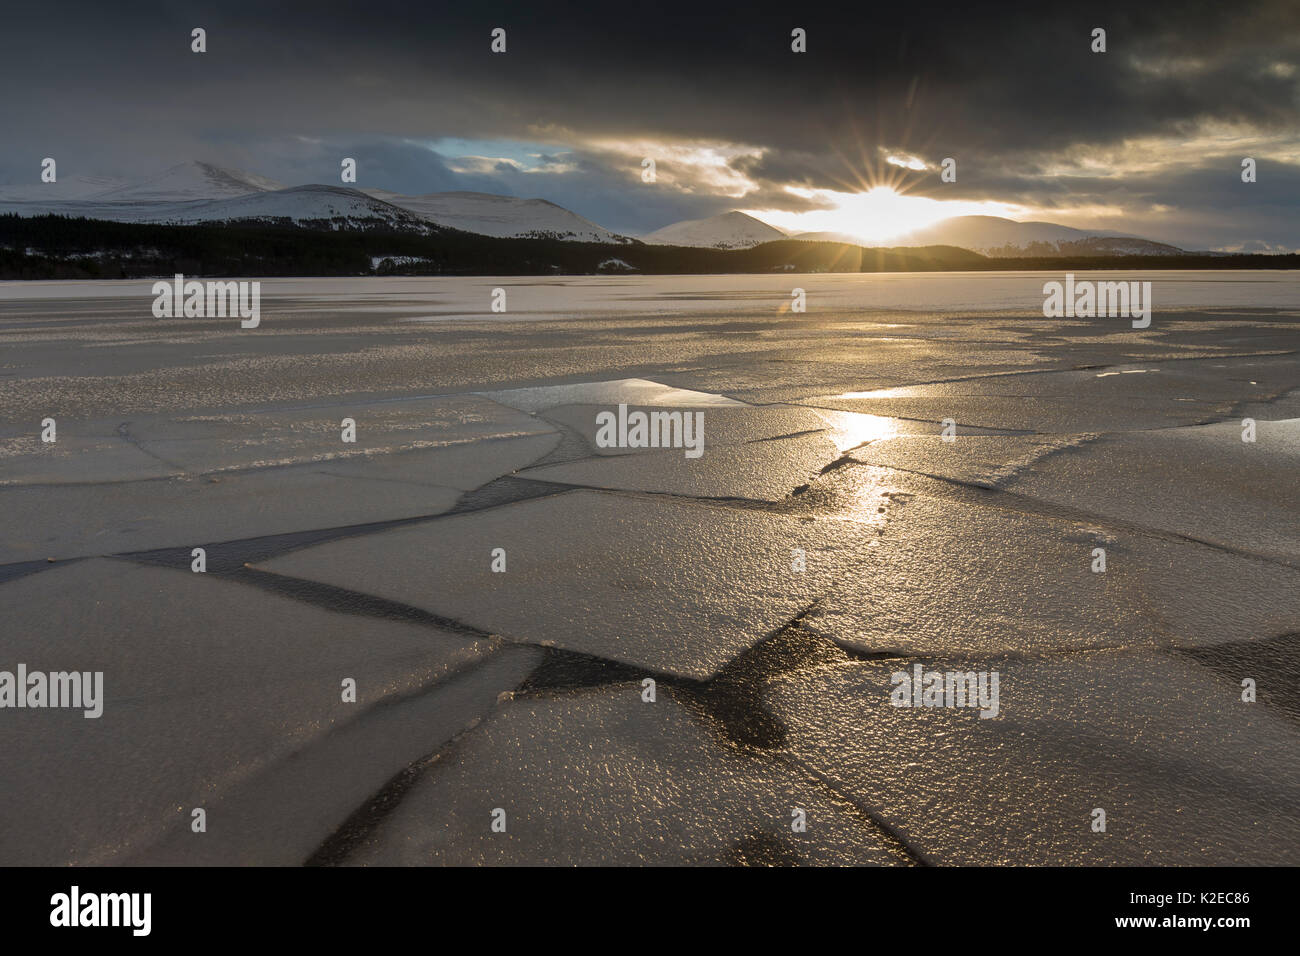 Frozen Loch Morlich at sunset with mountains in distance, Cairngorms National Park, Scotland, UK, January 2015. Stock Photo